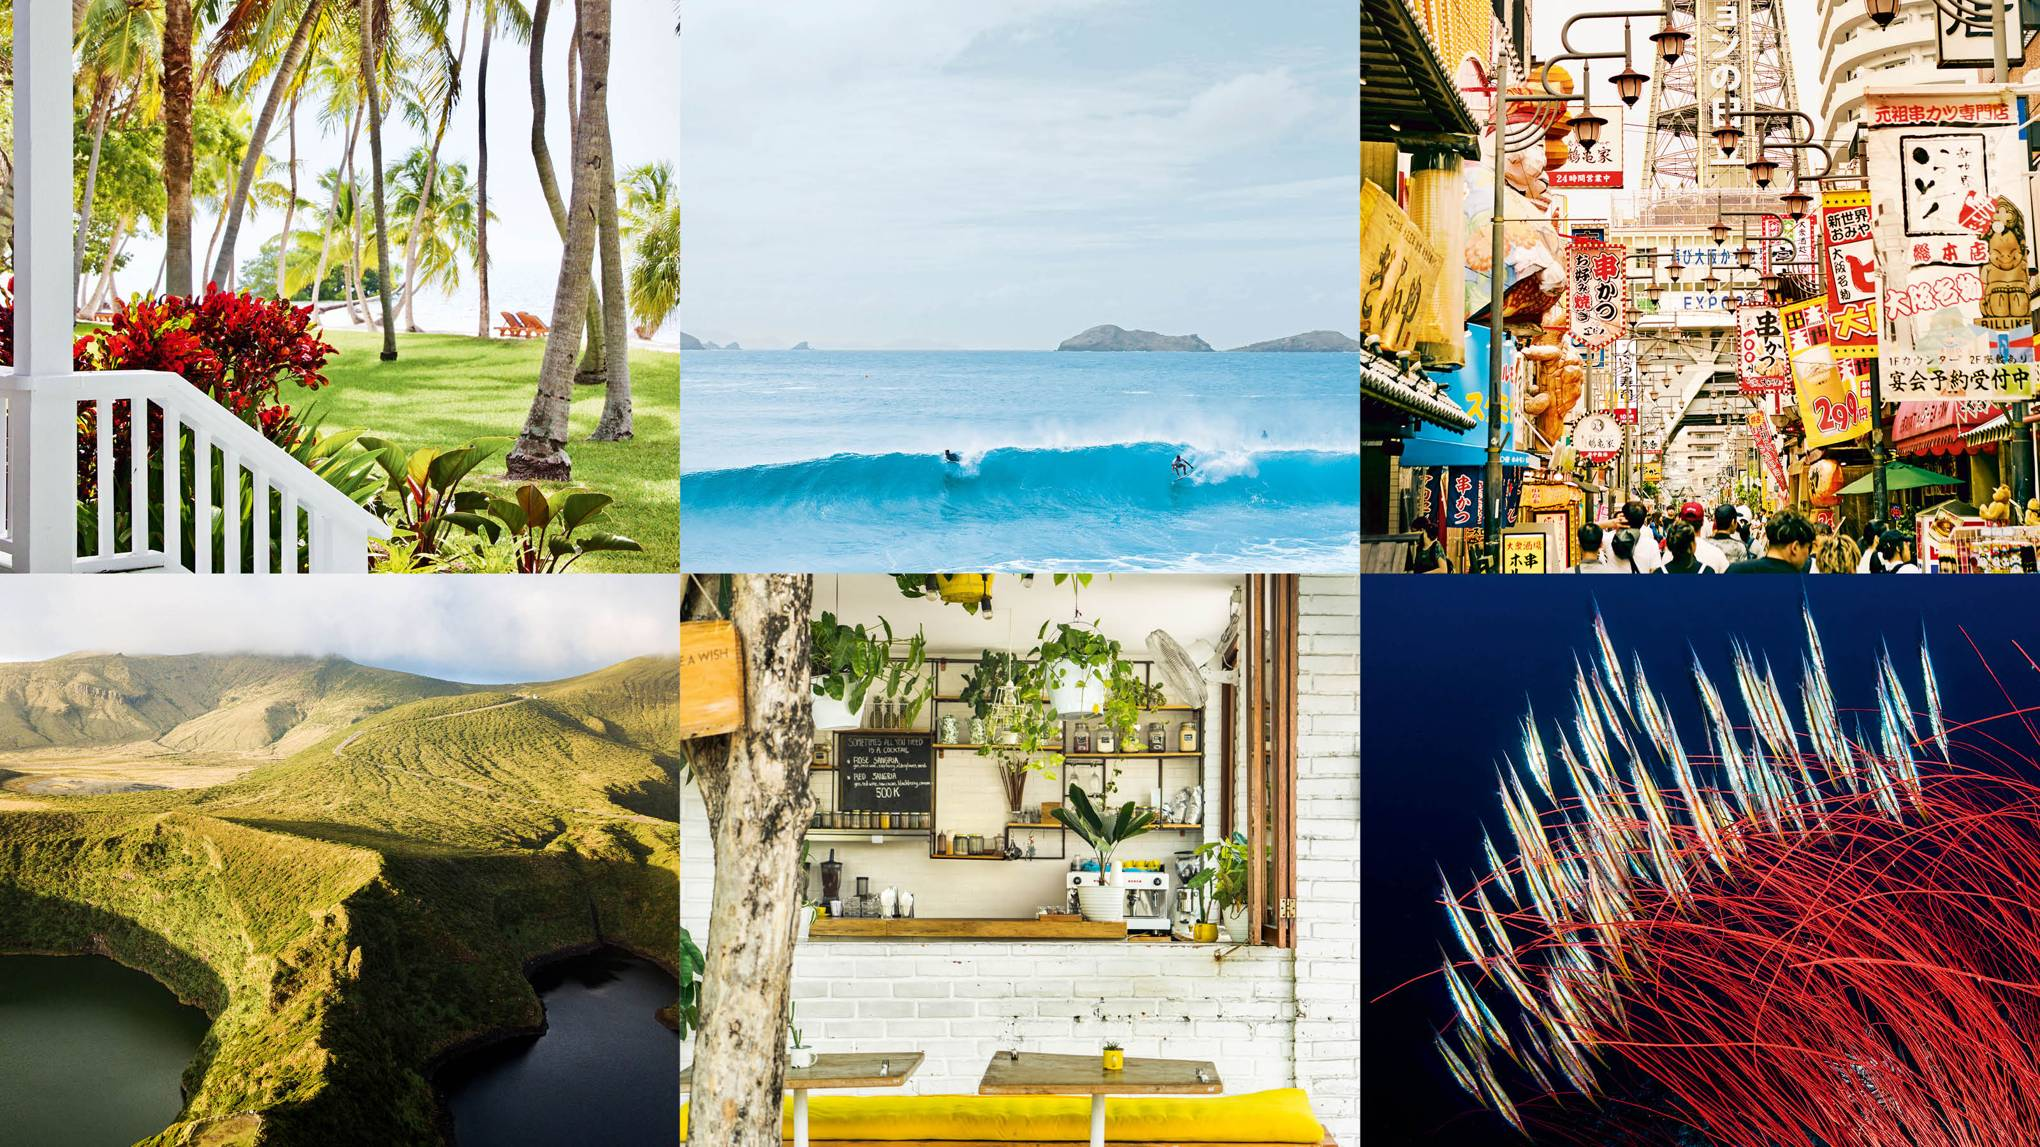 12 reasons you should buy the March 2020 issue of Condé Nast Traveller